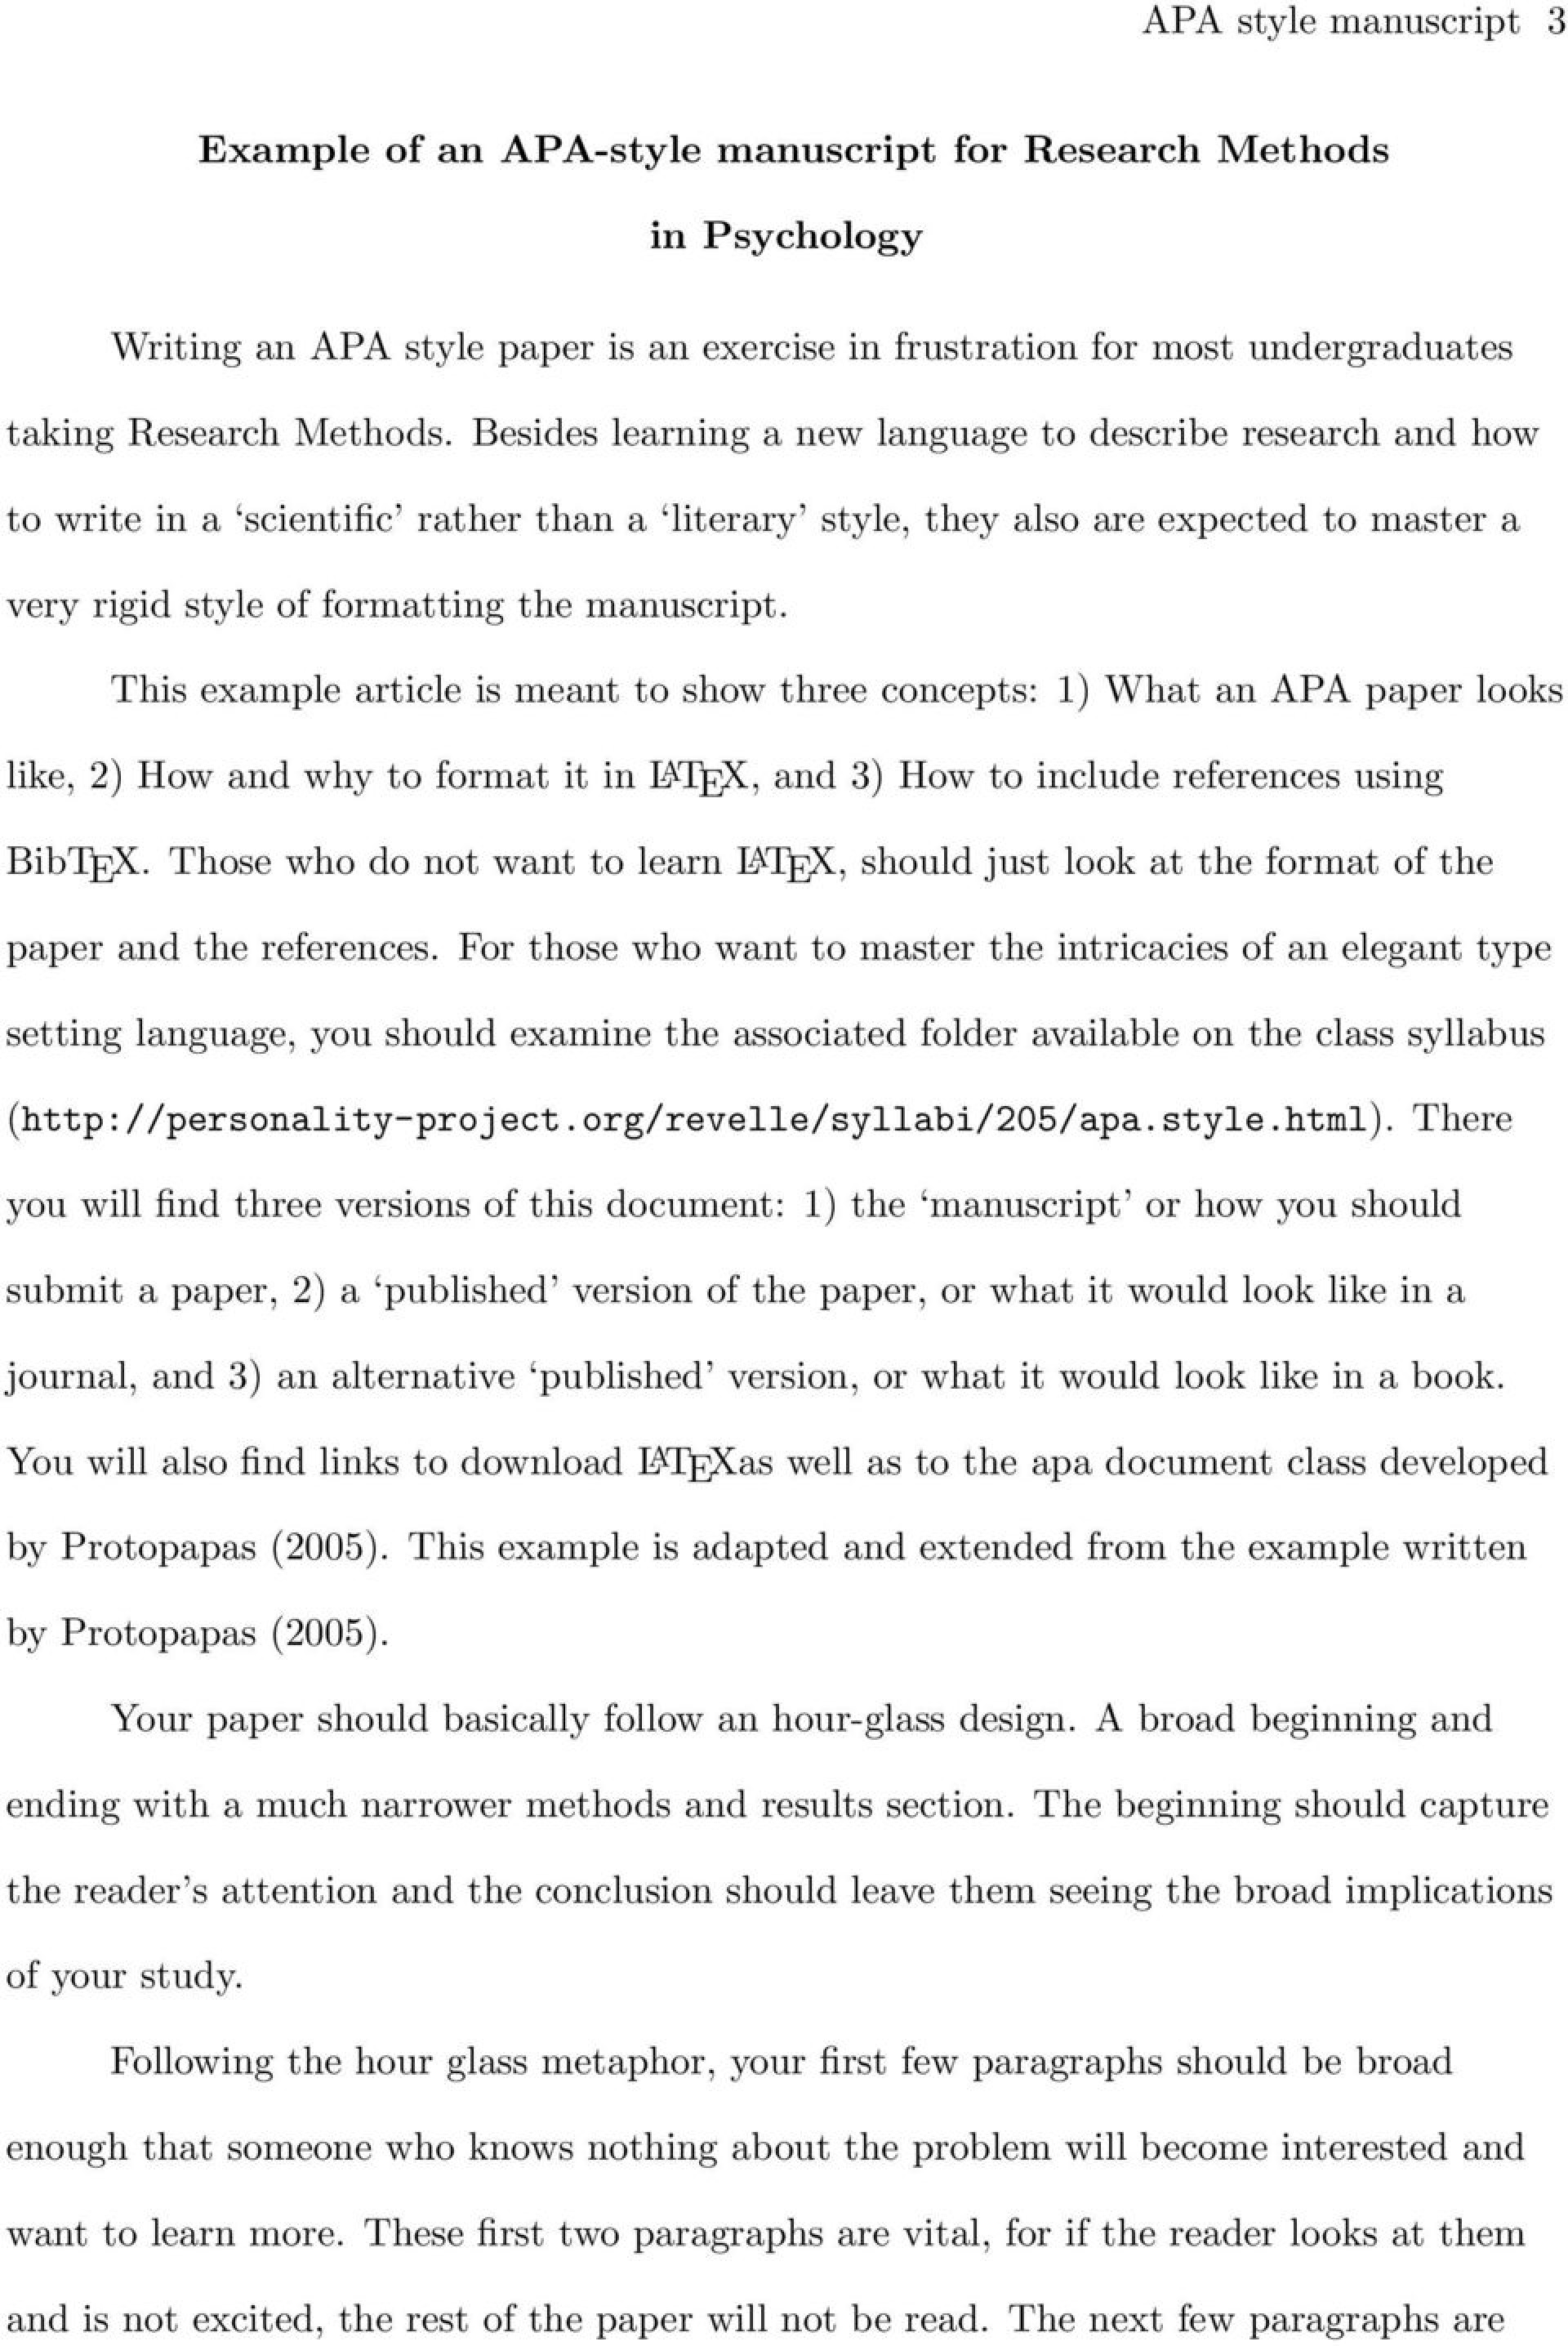 015 Methods Example For Research Paper Page 3 Breathtaking Of Materials And Section A Writing Method Results 1920